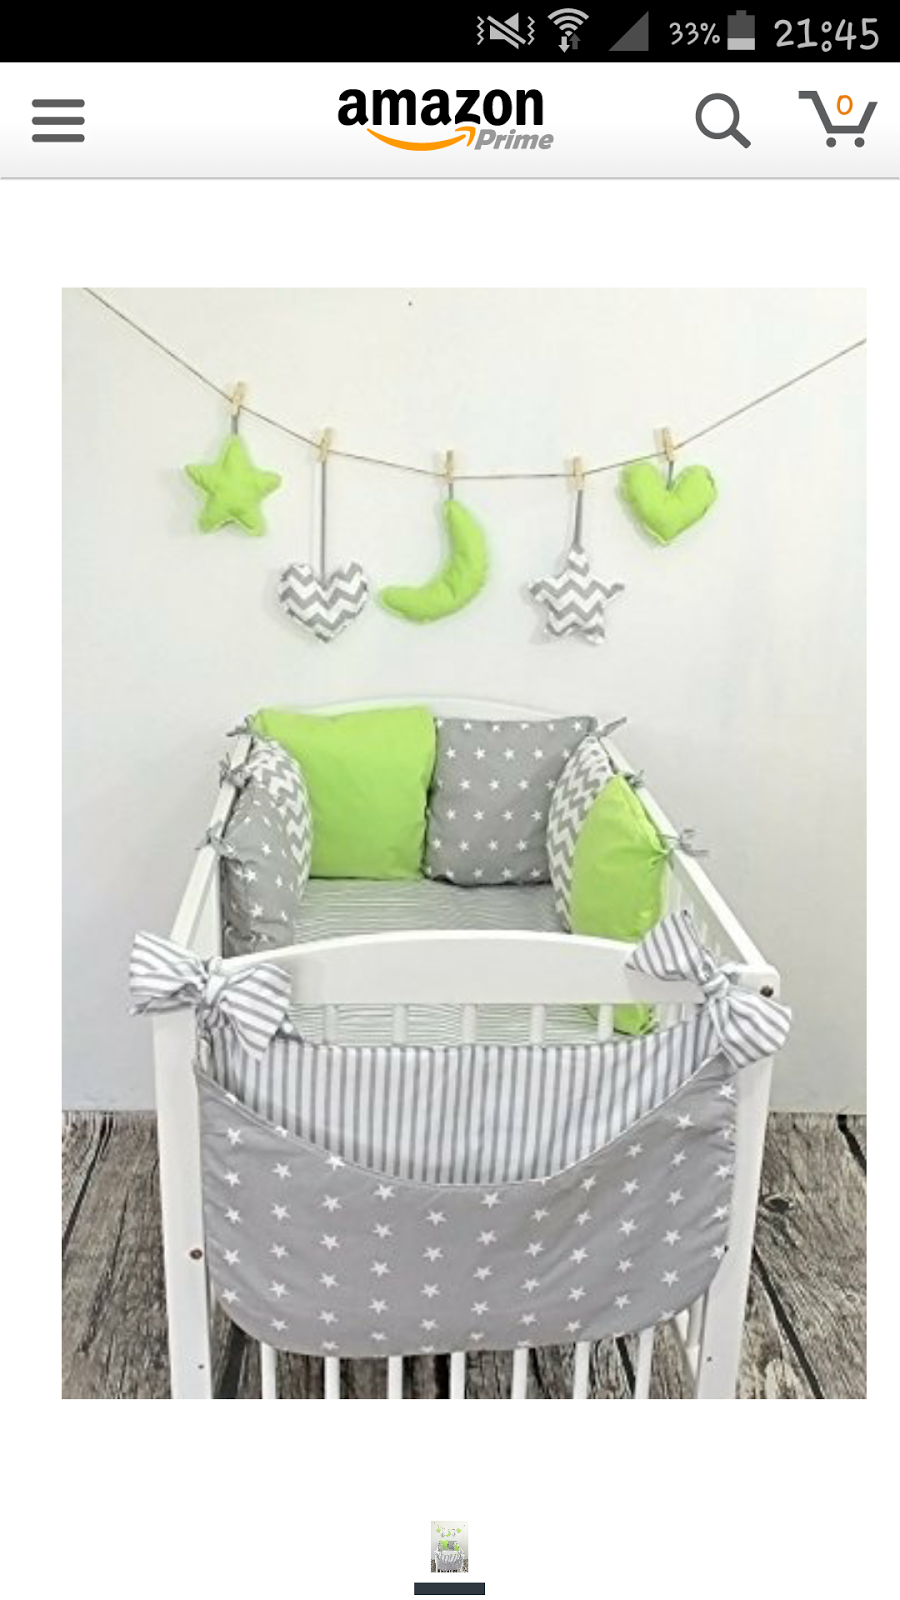 stiny style neues babybett einrichtungsideen f rs babyzimmer. Black Bedroom Furniture Sets. Home Design Ideas